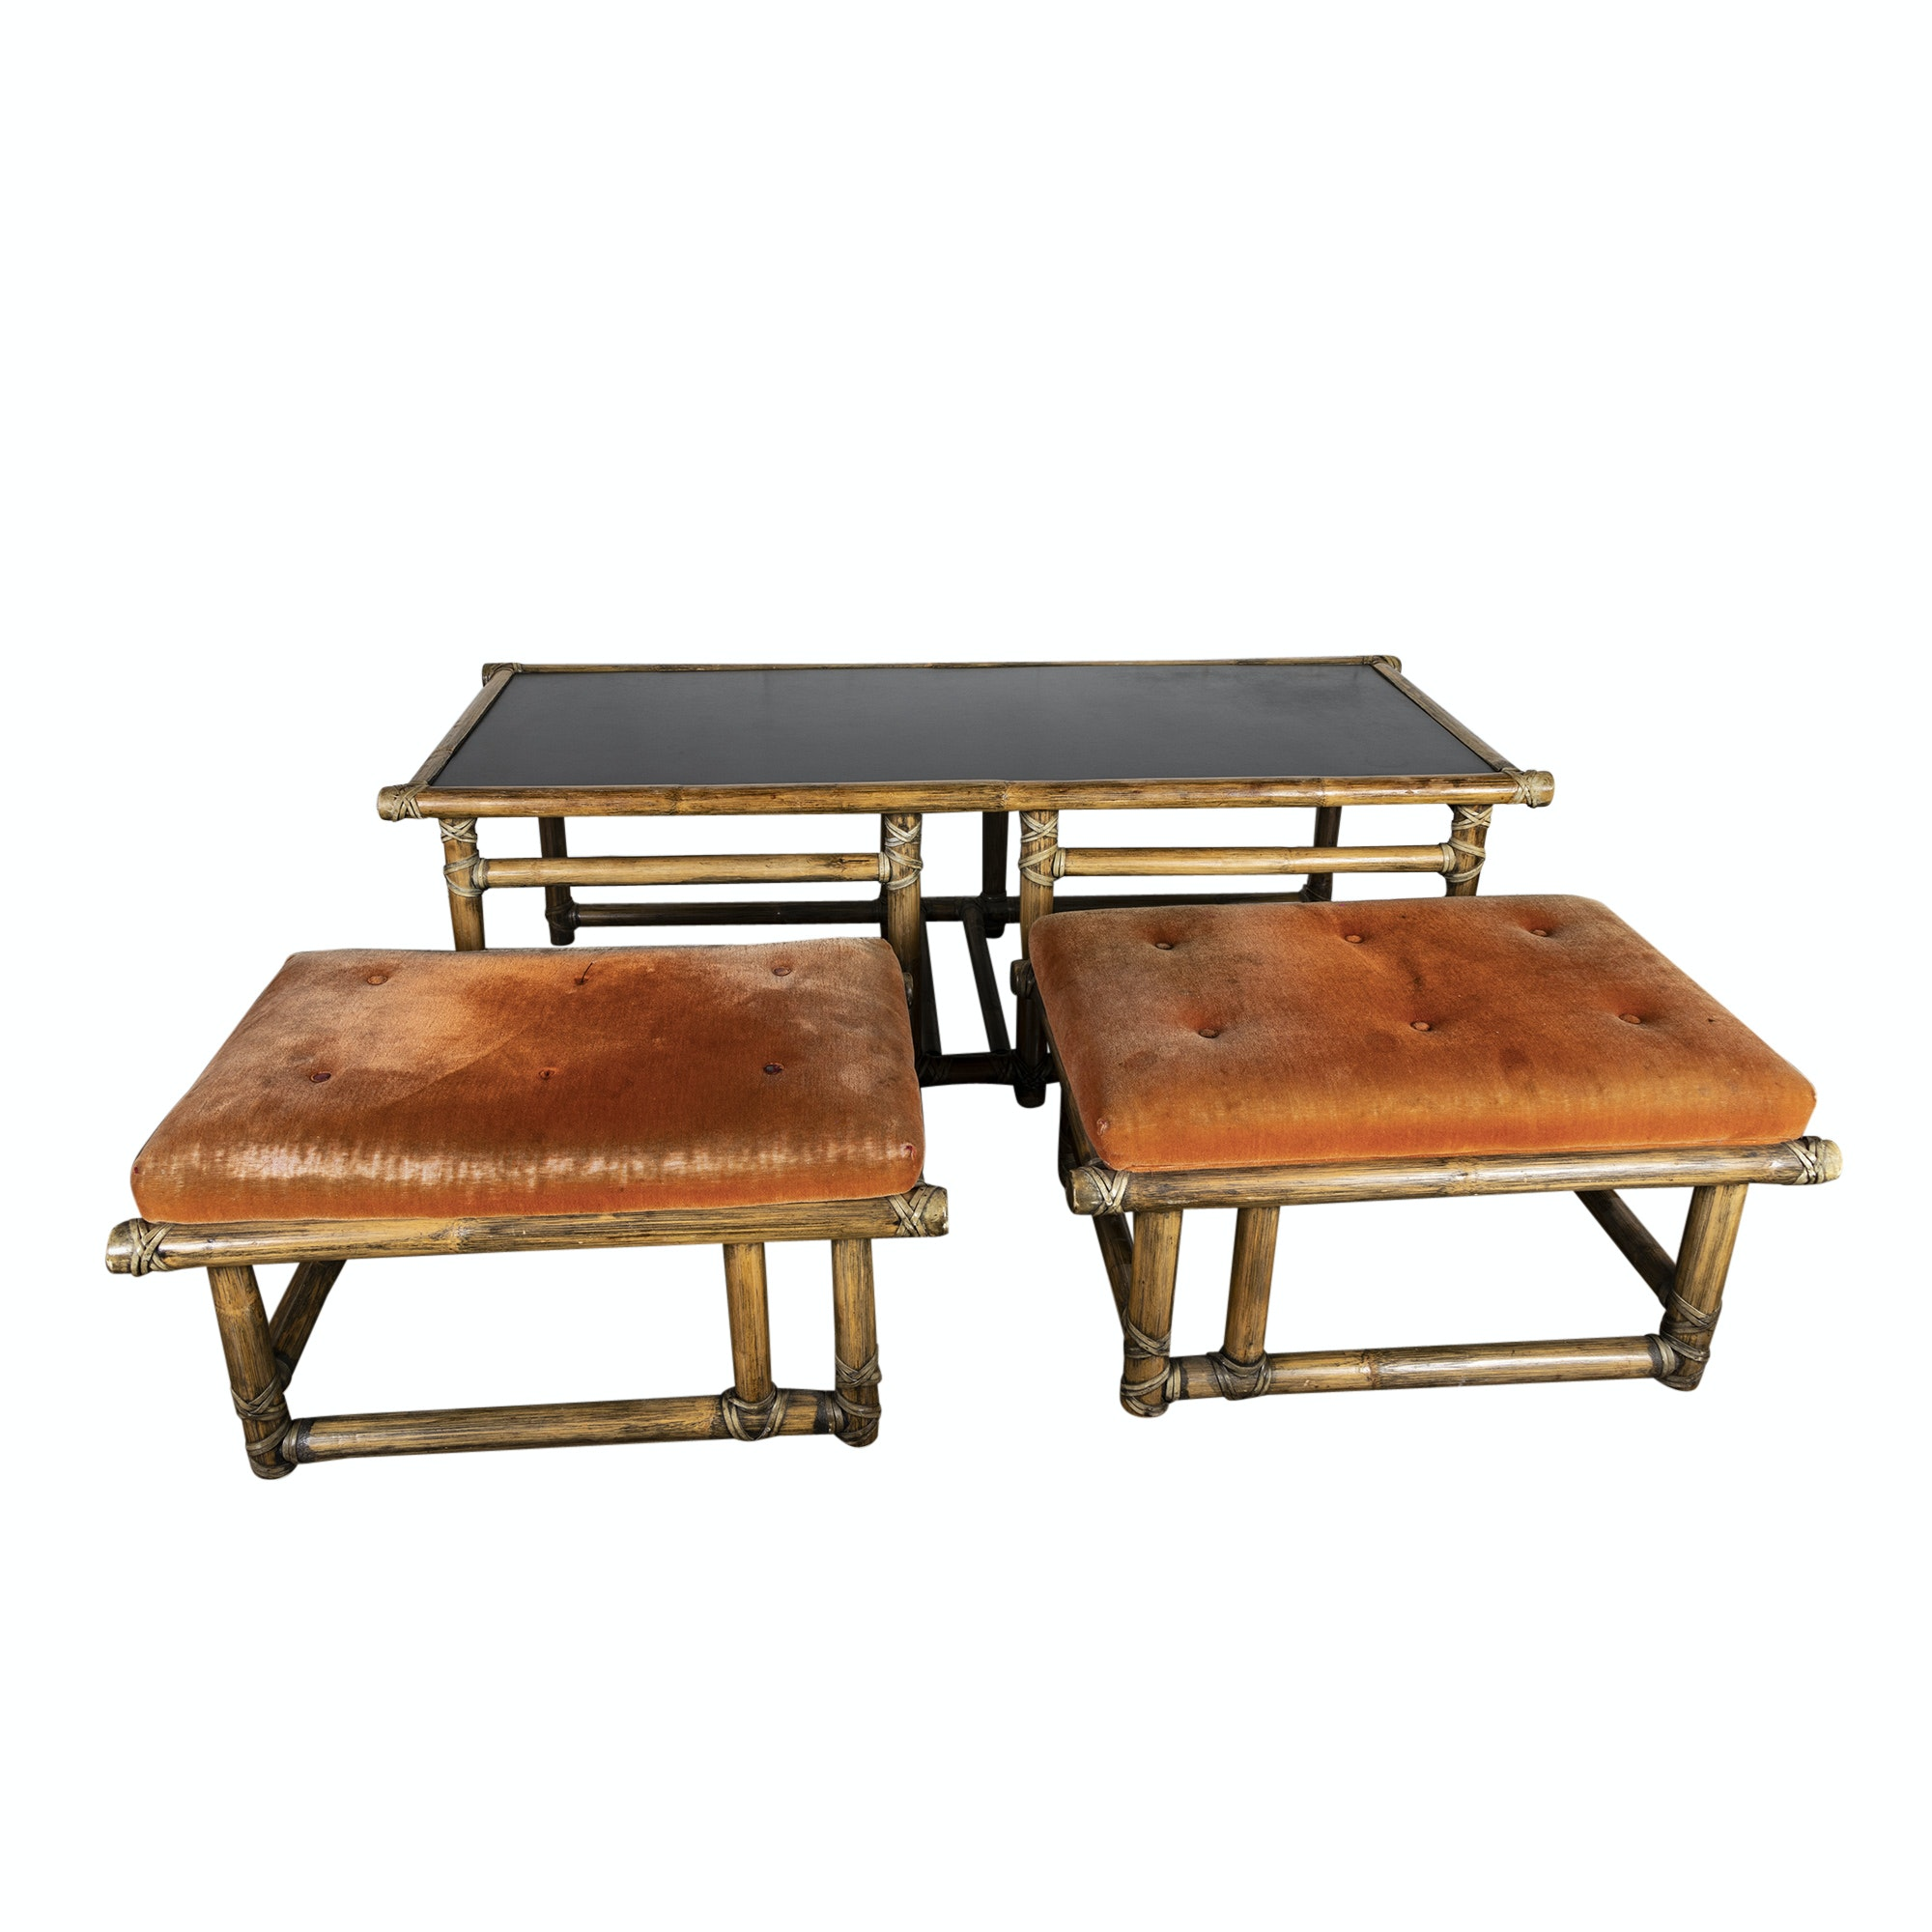 Rattan Coffee Table and Upholstered Benches by McGuire, Mid 20th Century